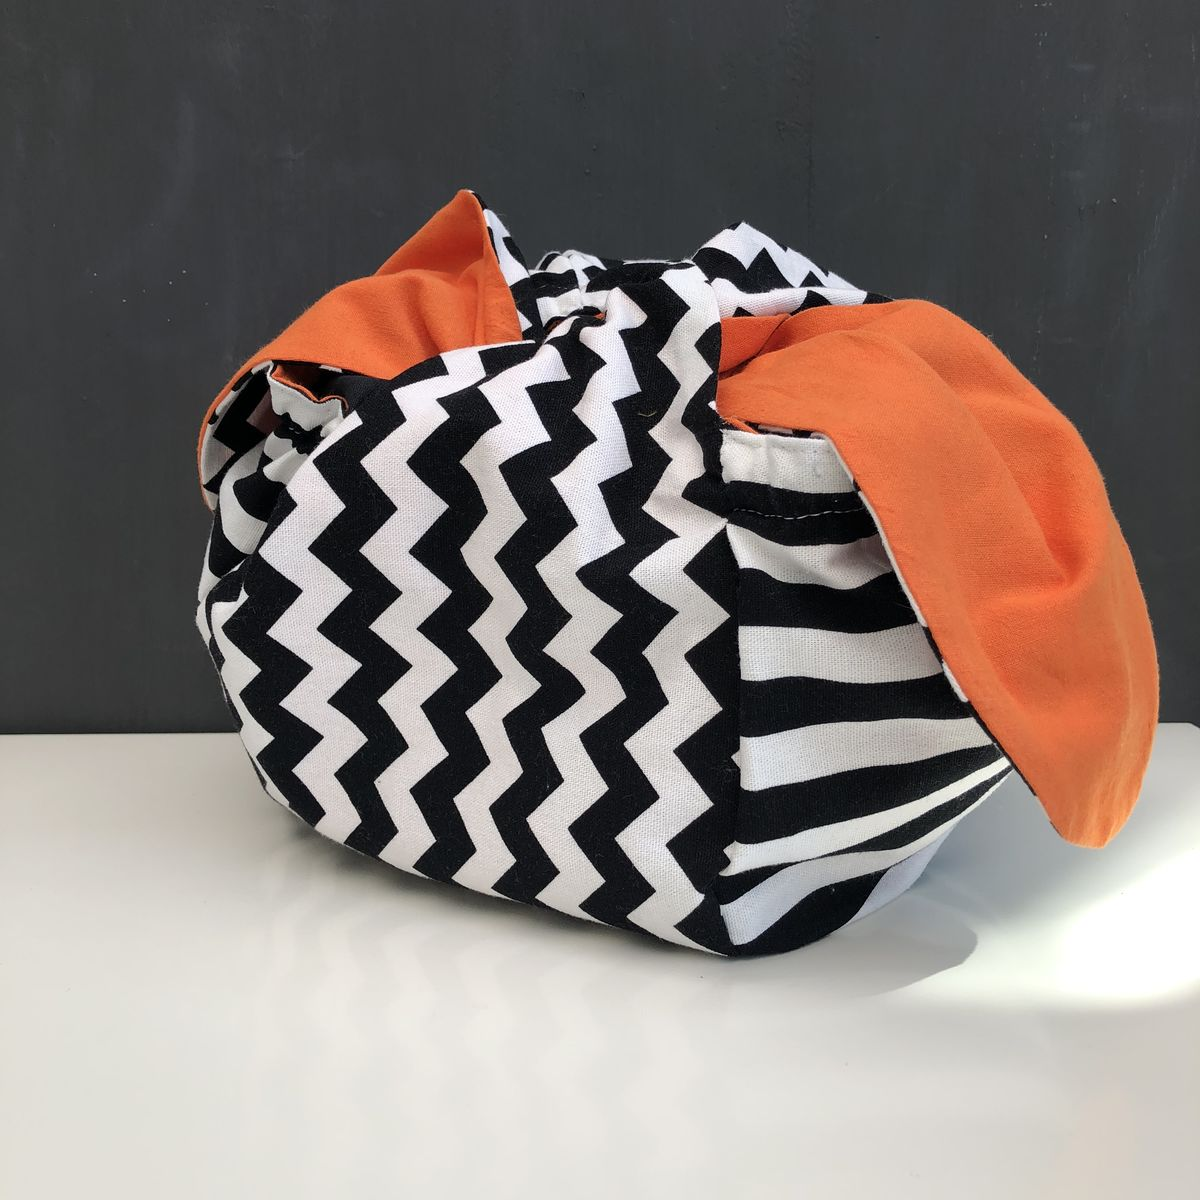 Japanese style cotton knotted fabric bag - monochrome/orange - product images  of